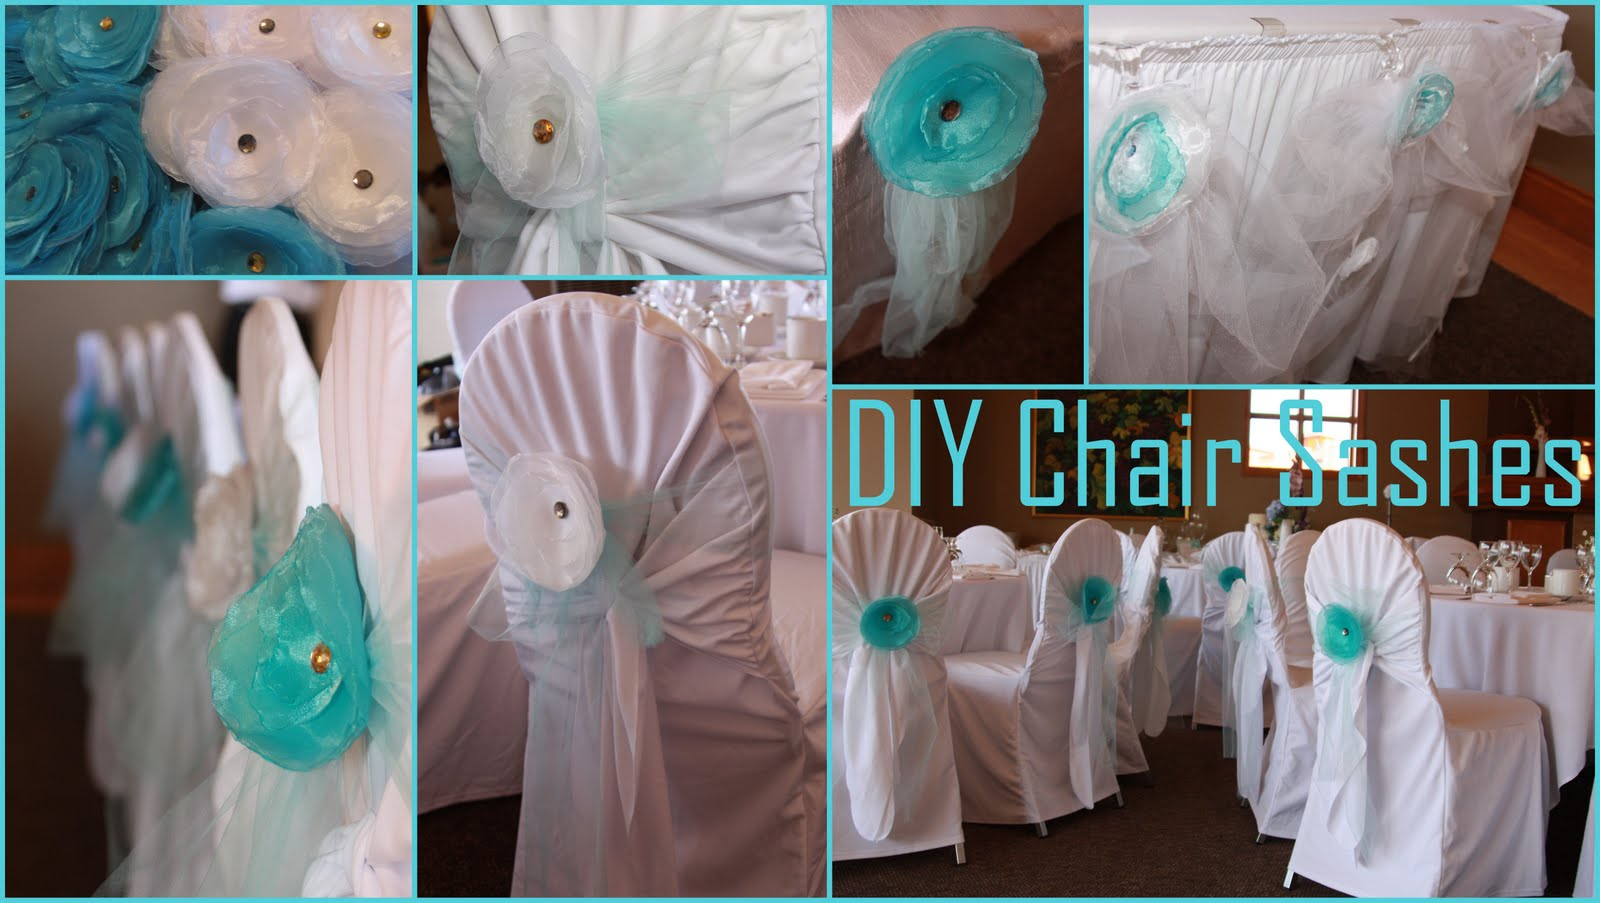 How To Make Easy Chair Covers For Wedding Accent Lounge Chairs Sugar N 39 Spice Event Design And Designer Sweet Tables Diy